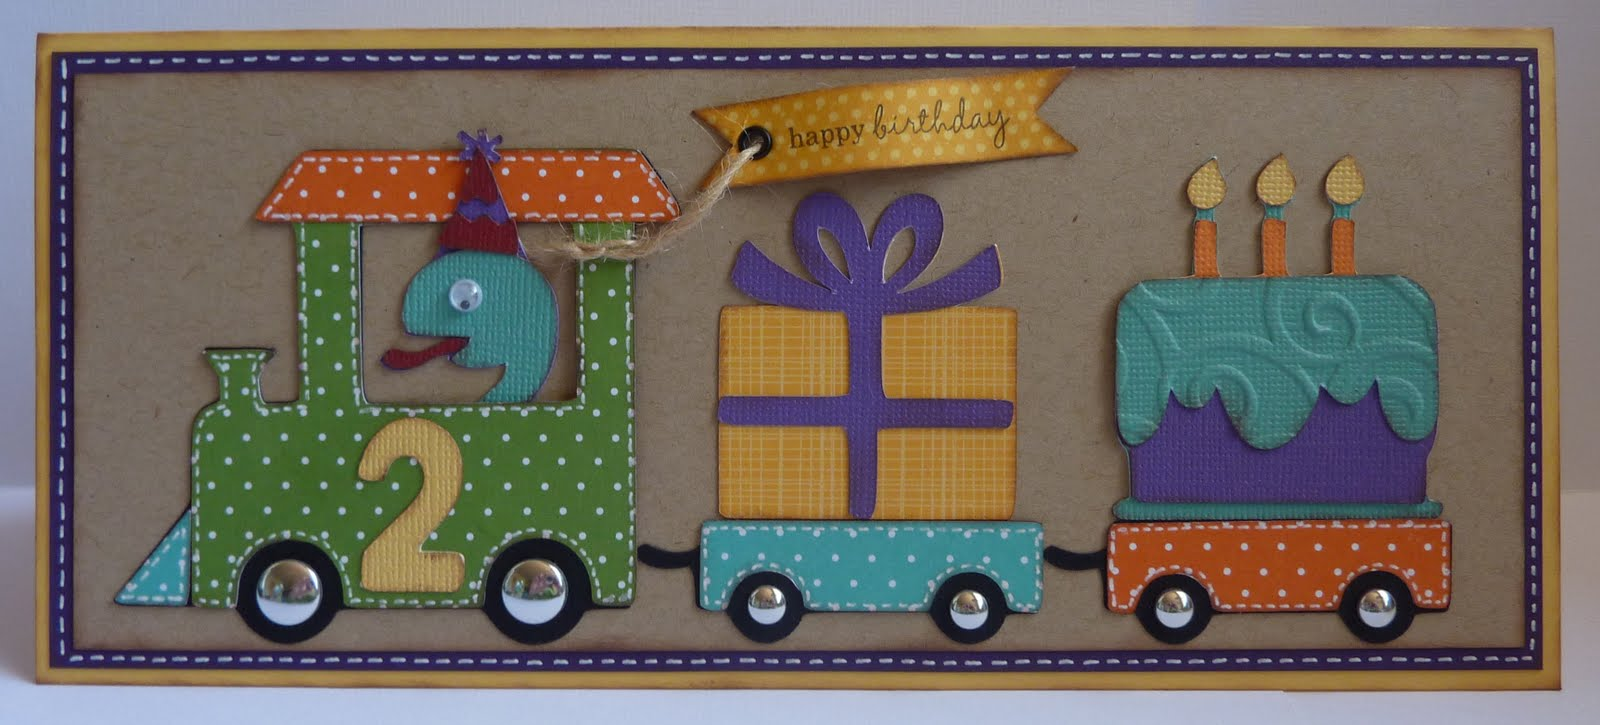 Crafting With Katie Pop Up Train Birthday Card